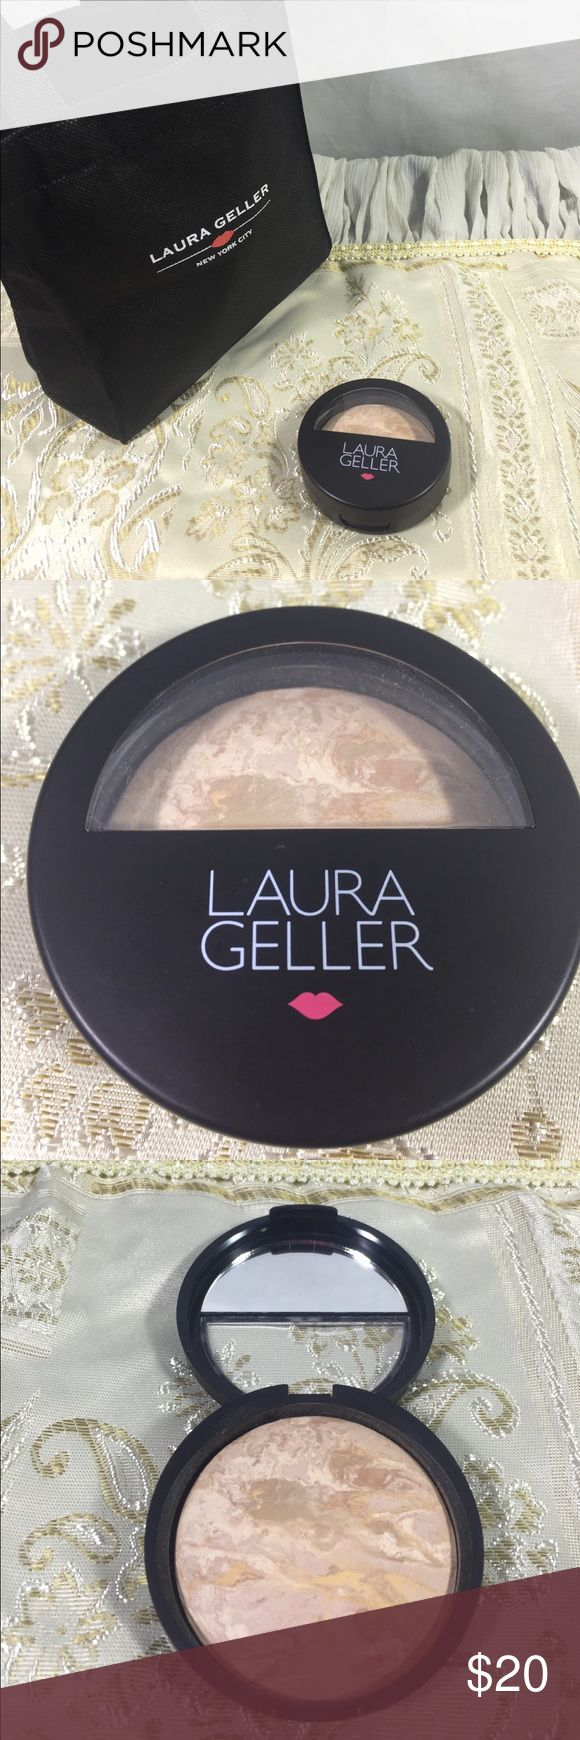 Laura Geller Foundation Fair Net. Wt. 0.32 oz / 9g New never used. No include bag and no box.       BG Laura Geller Other